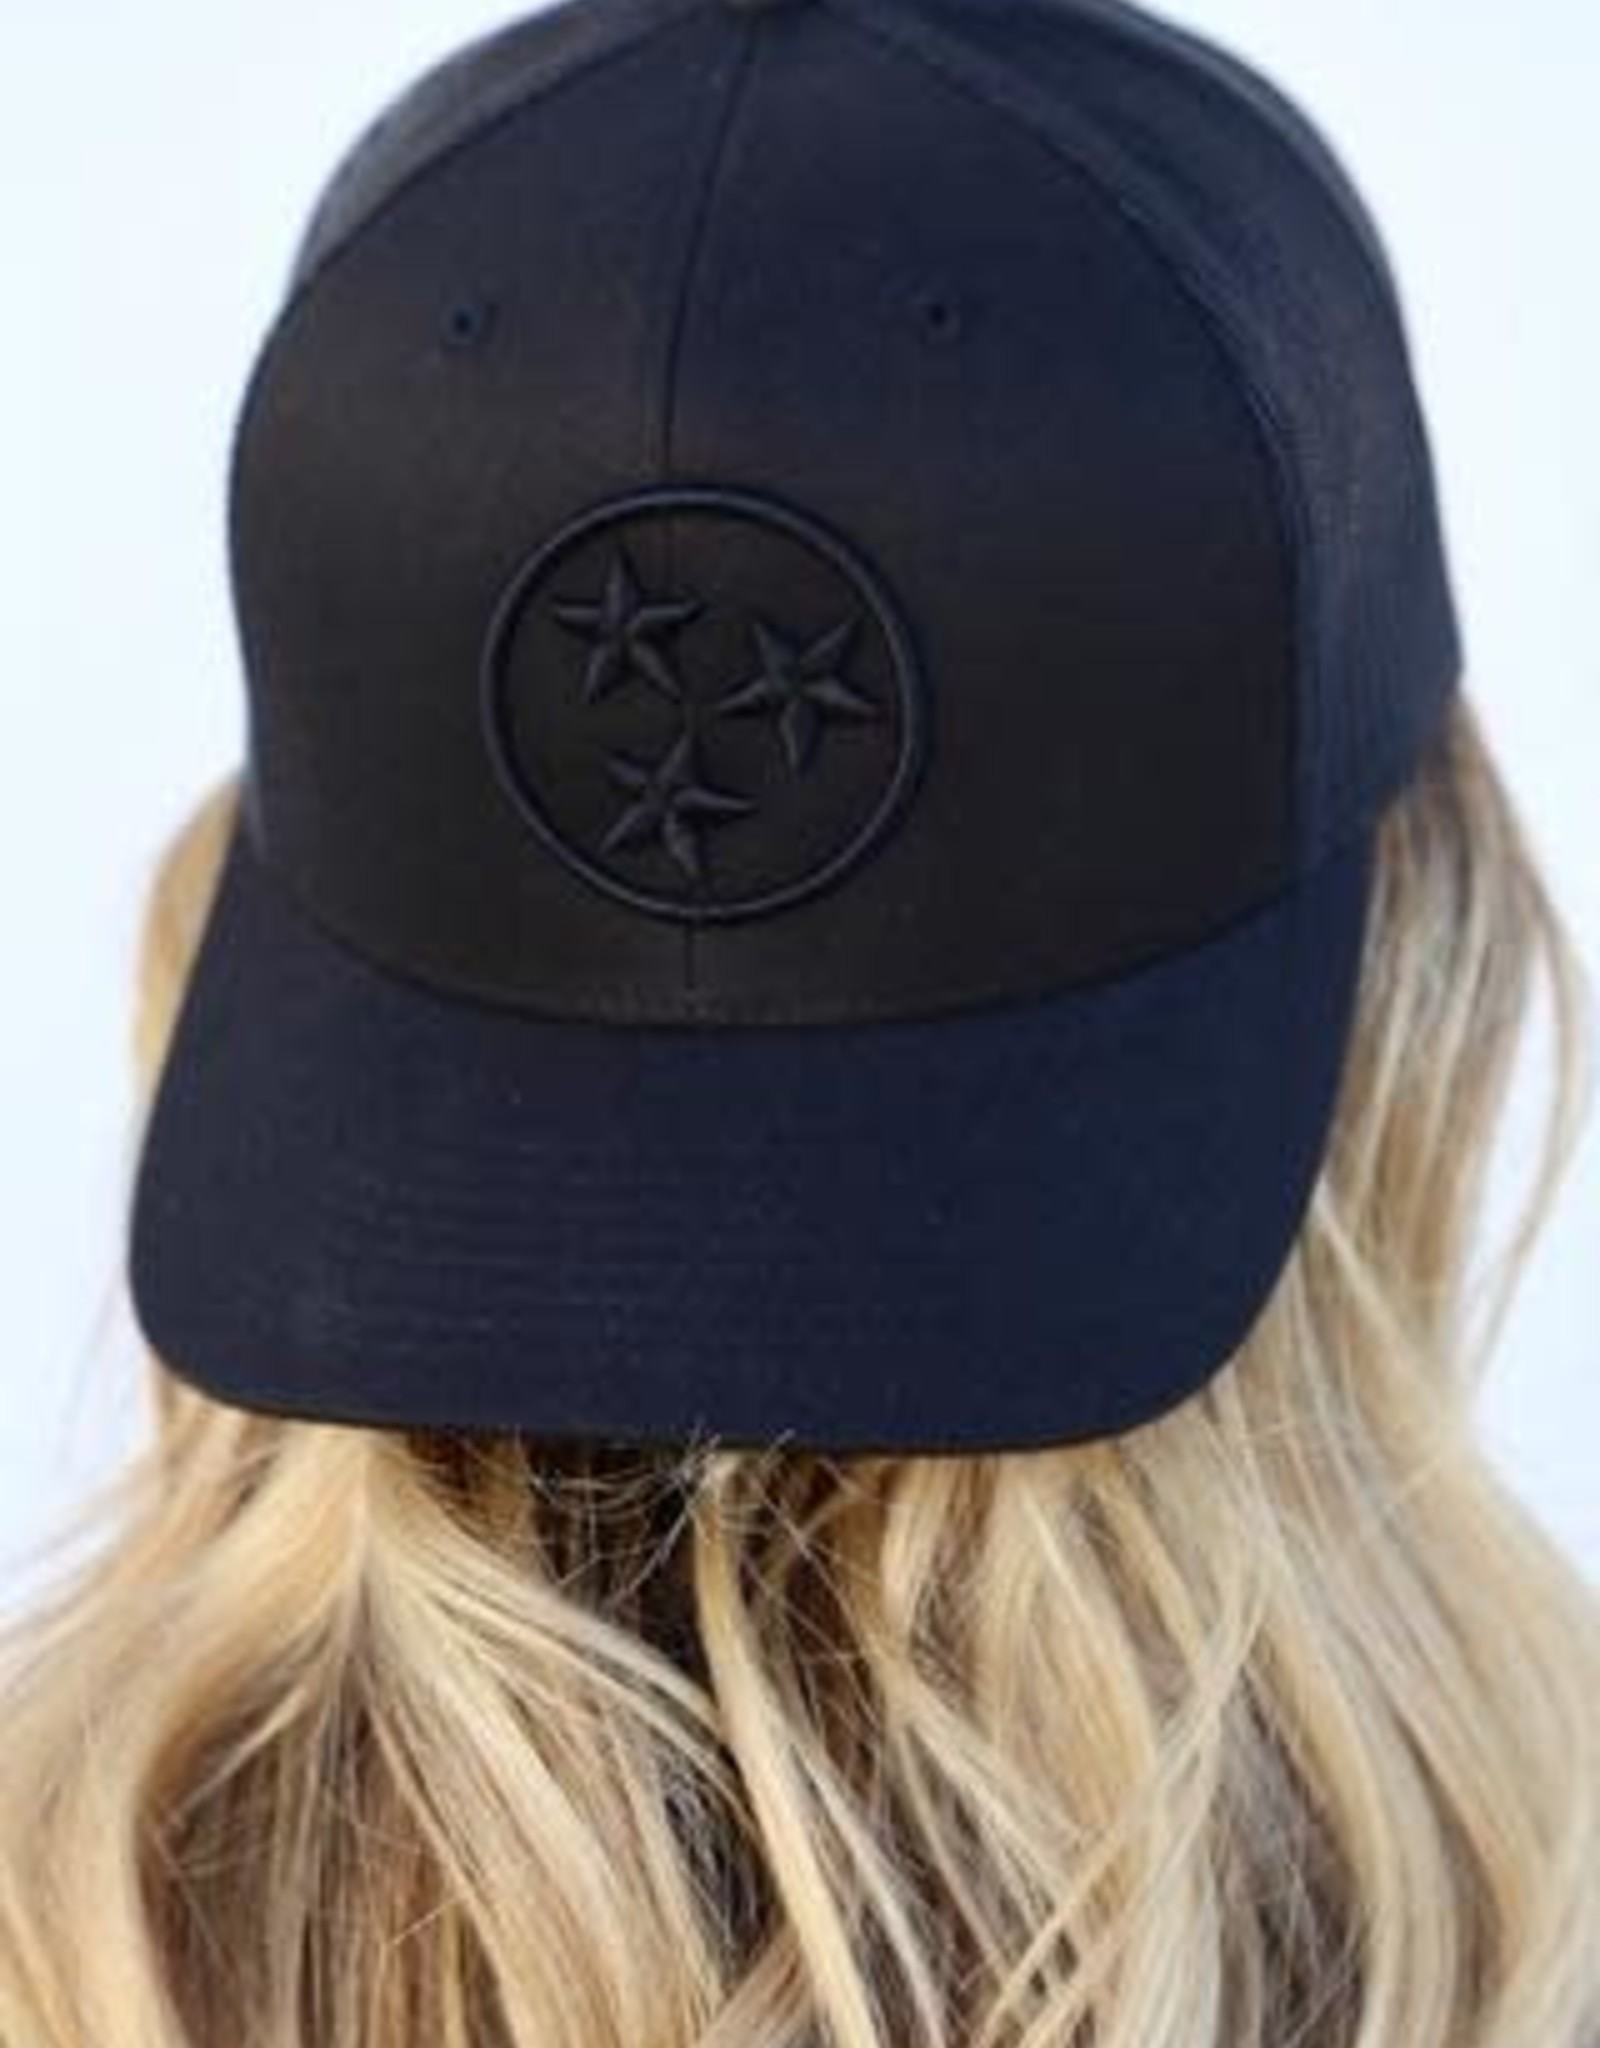 Nash Collection The Nash Collection Trucker Hat- Tri Star